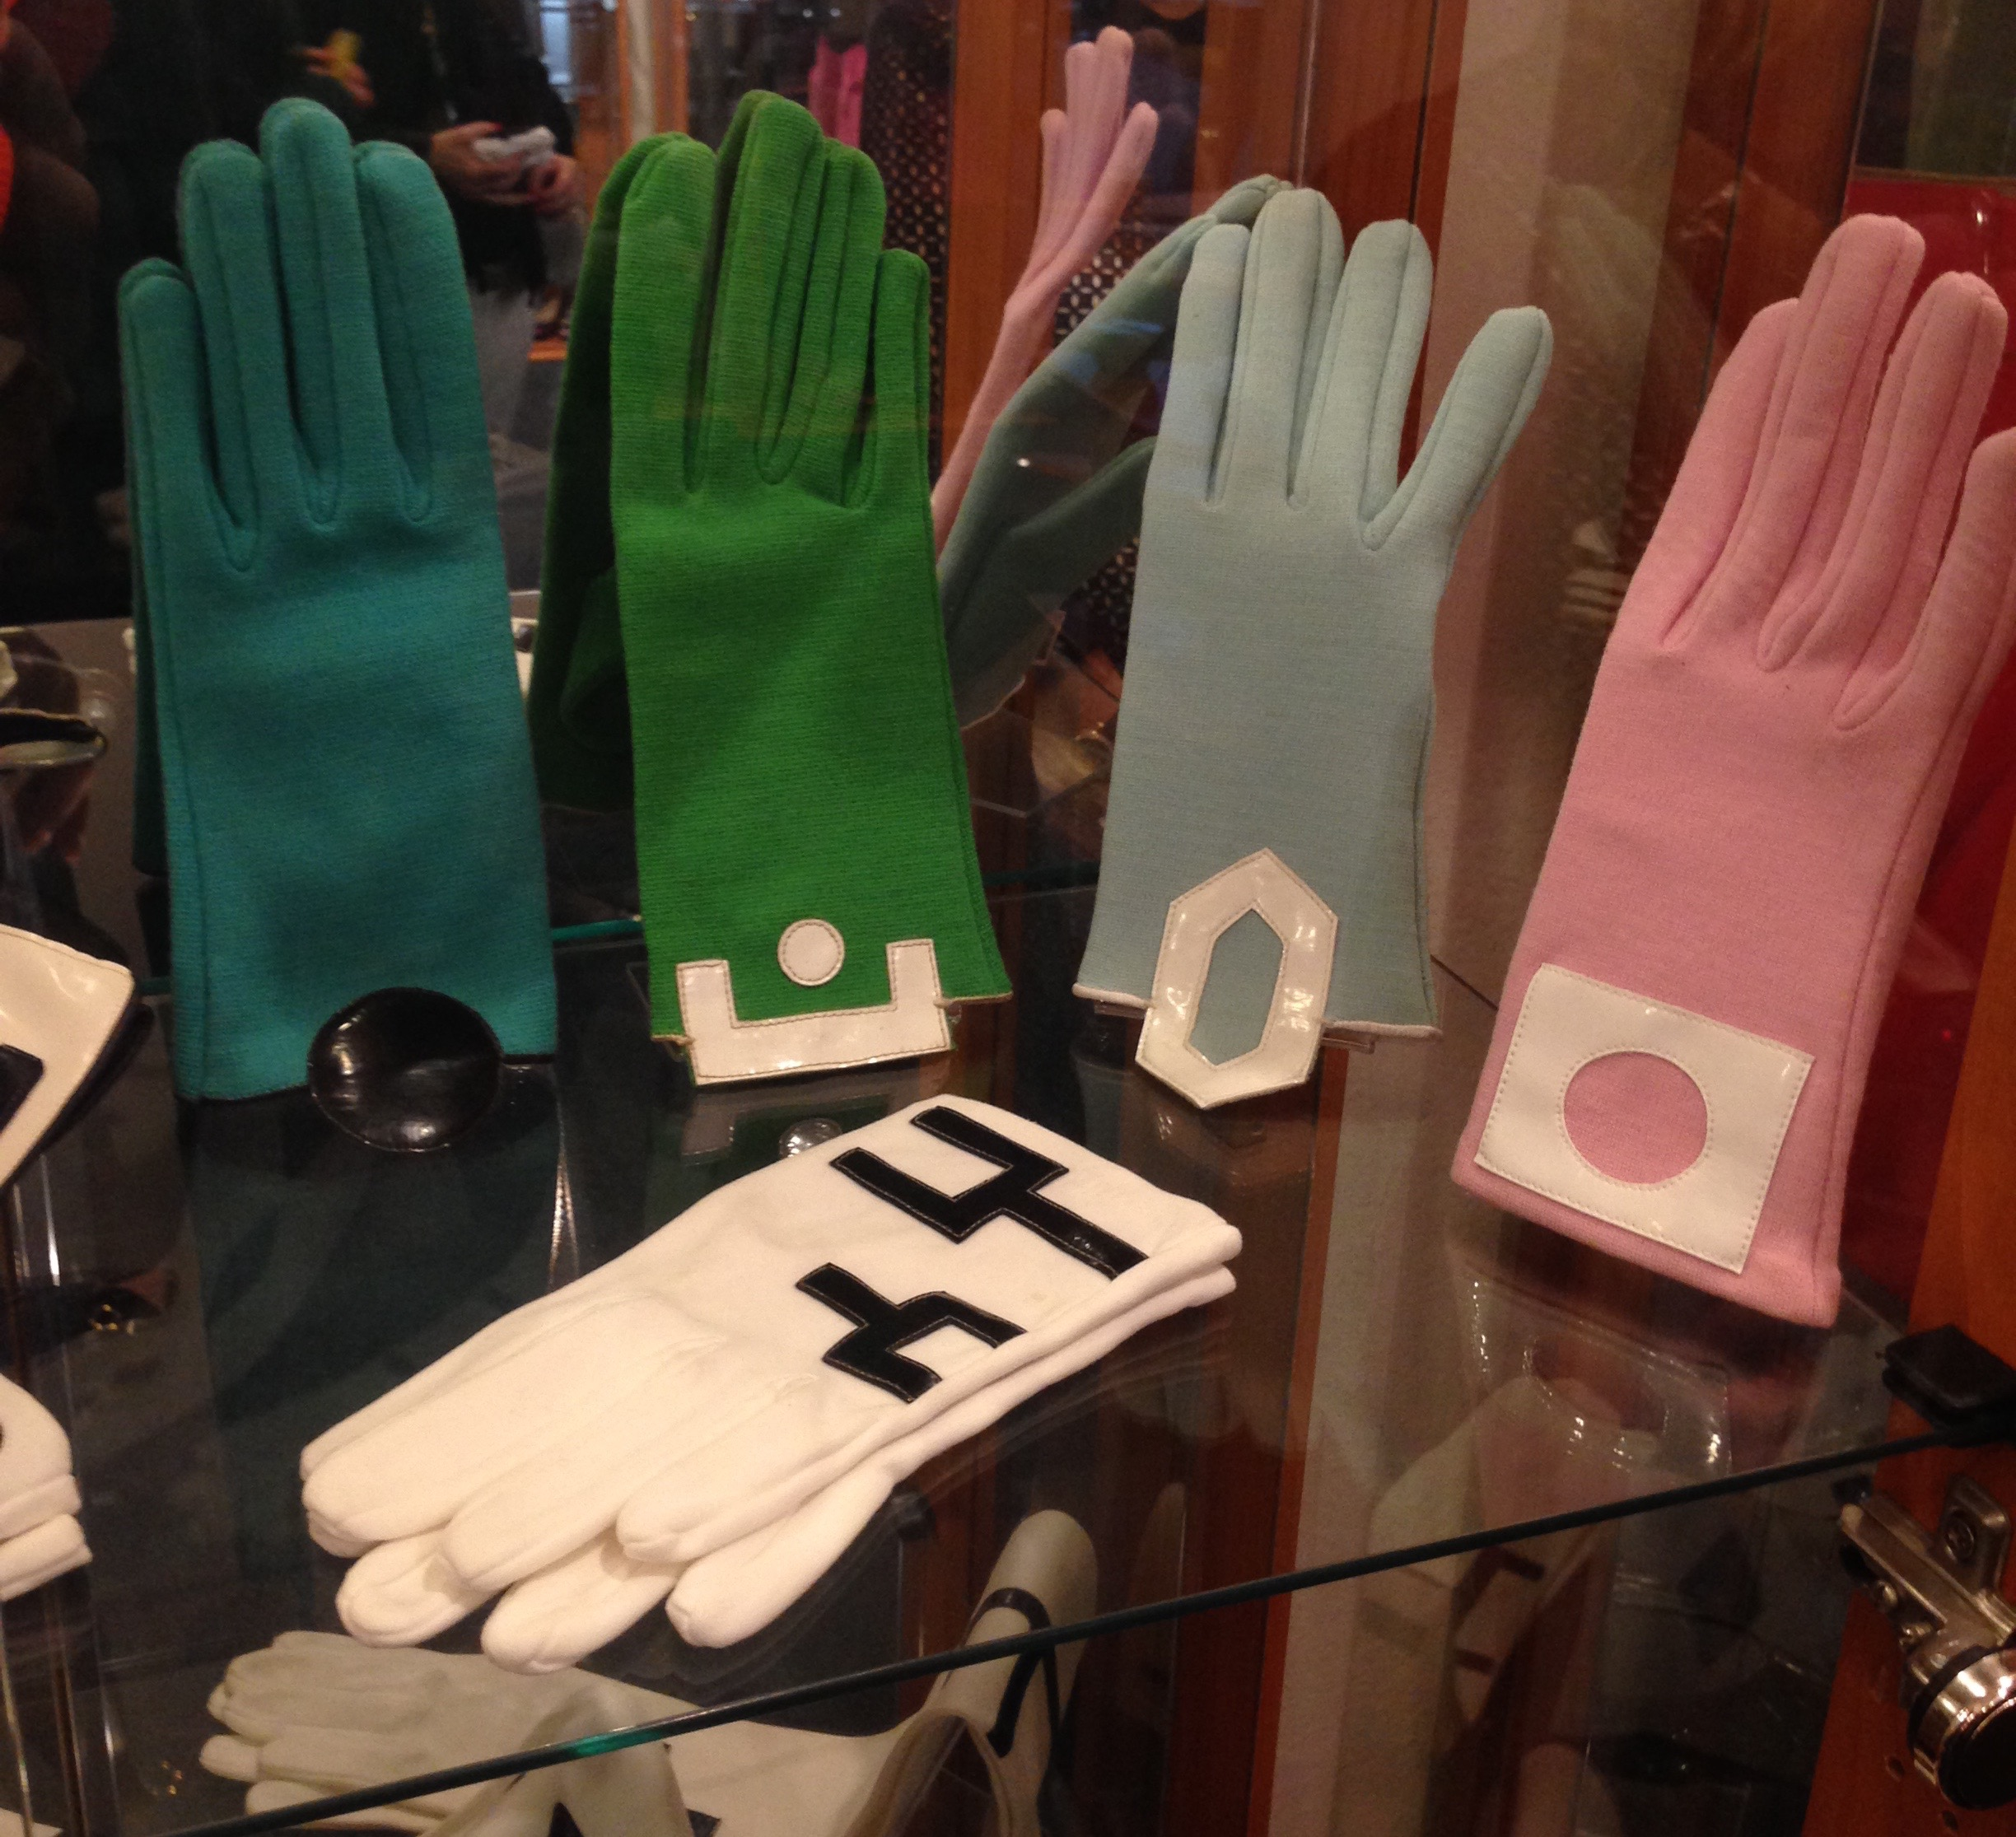 Pierre Cardin gloves from the 1960s, Musée Pierre Cardin.